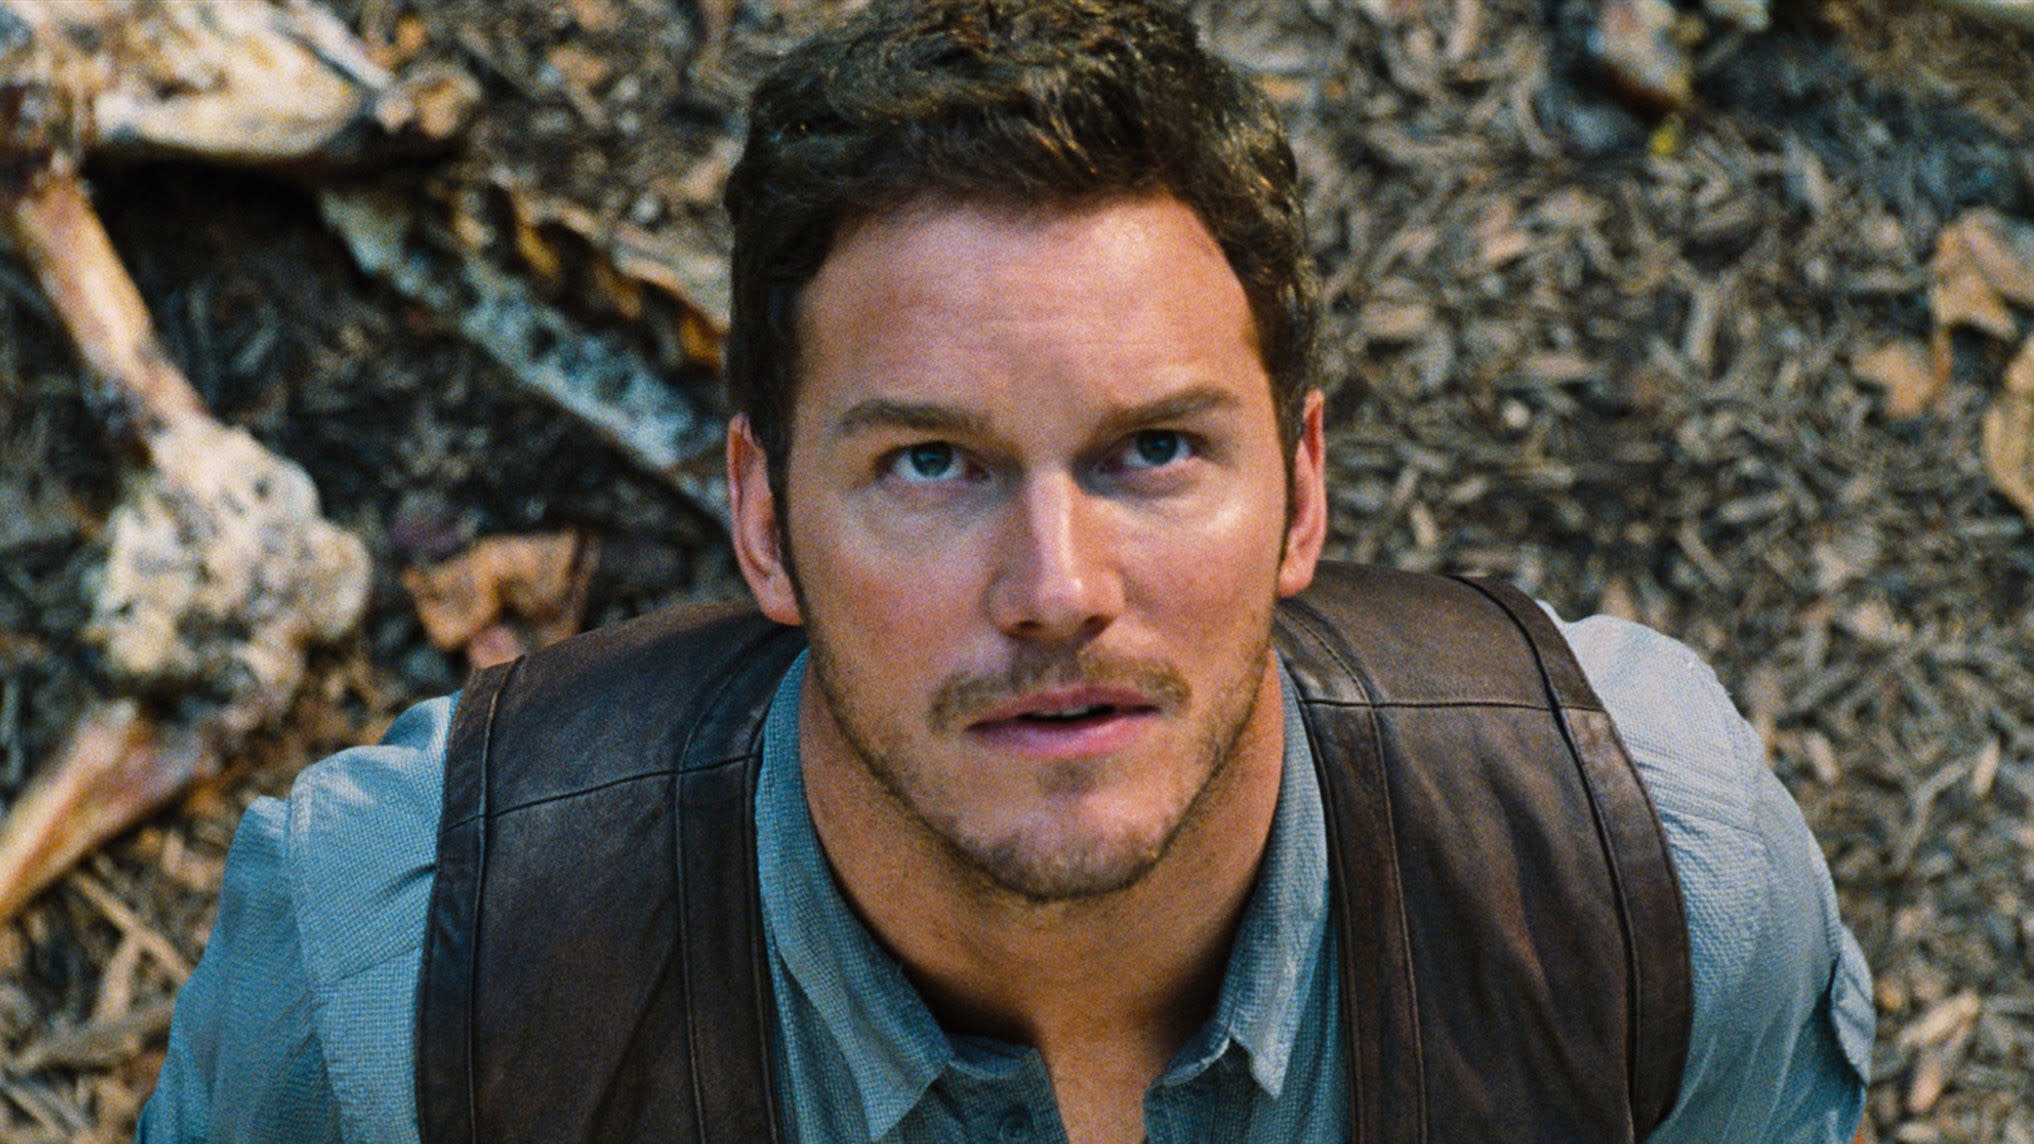 Chris Pratt says 'Jurassic World 3' feels like 'Avengers: Endgame'